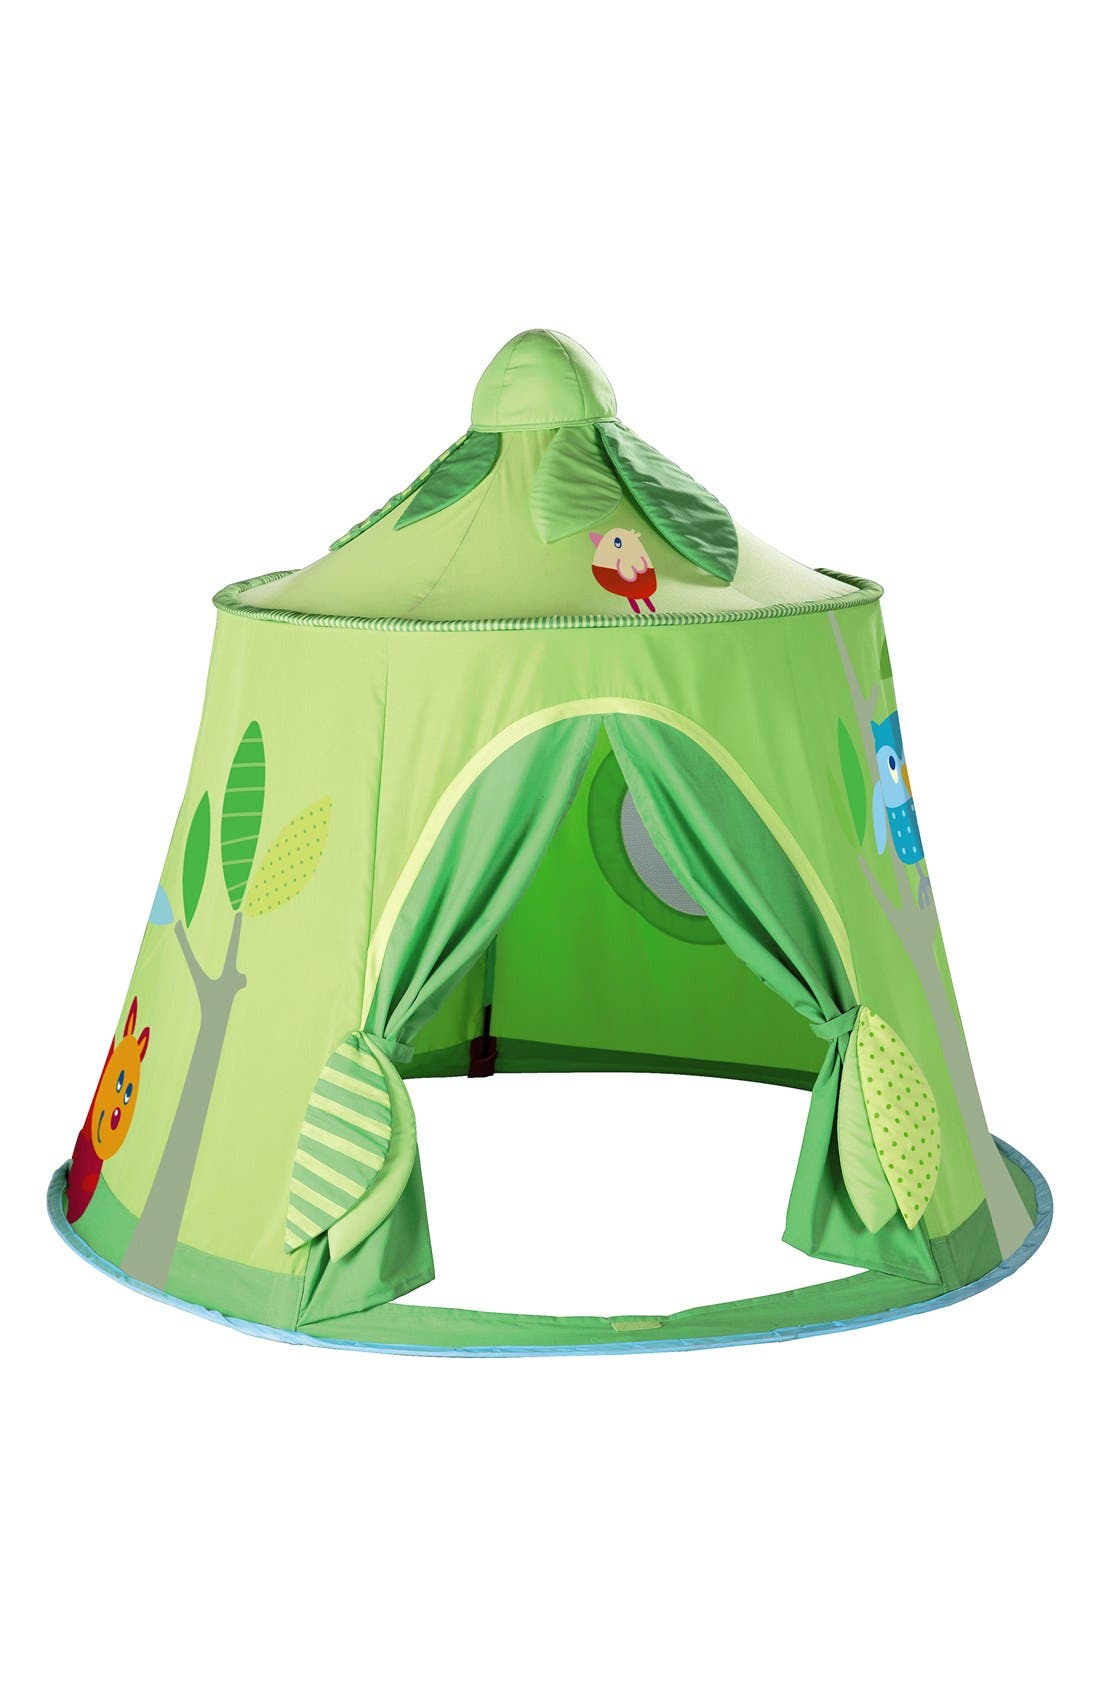 'Magic Forest' Play Tent,                         Main,                         color, Green